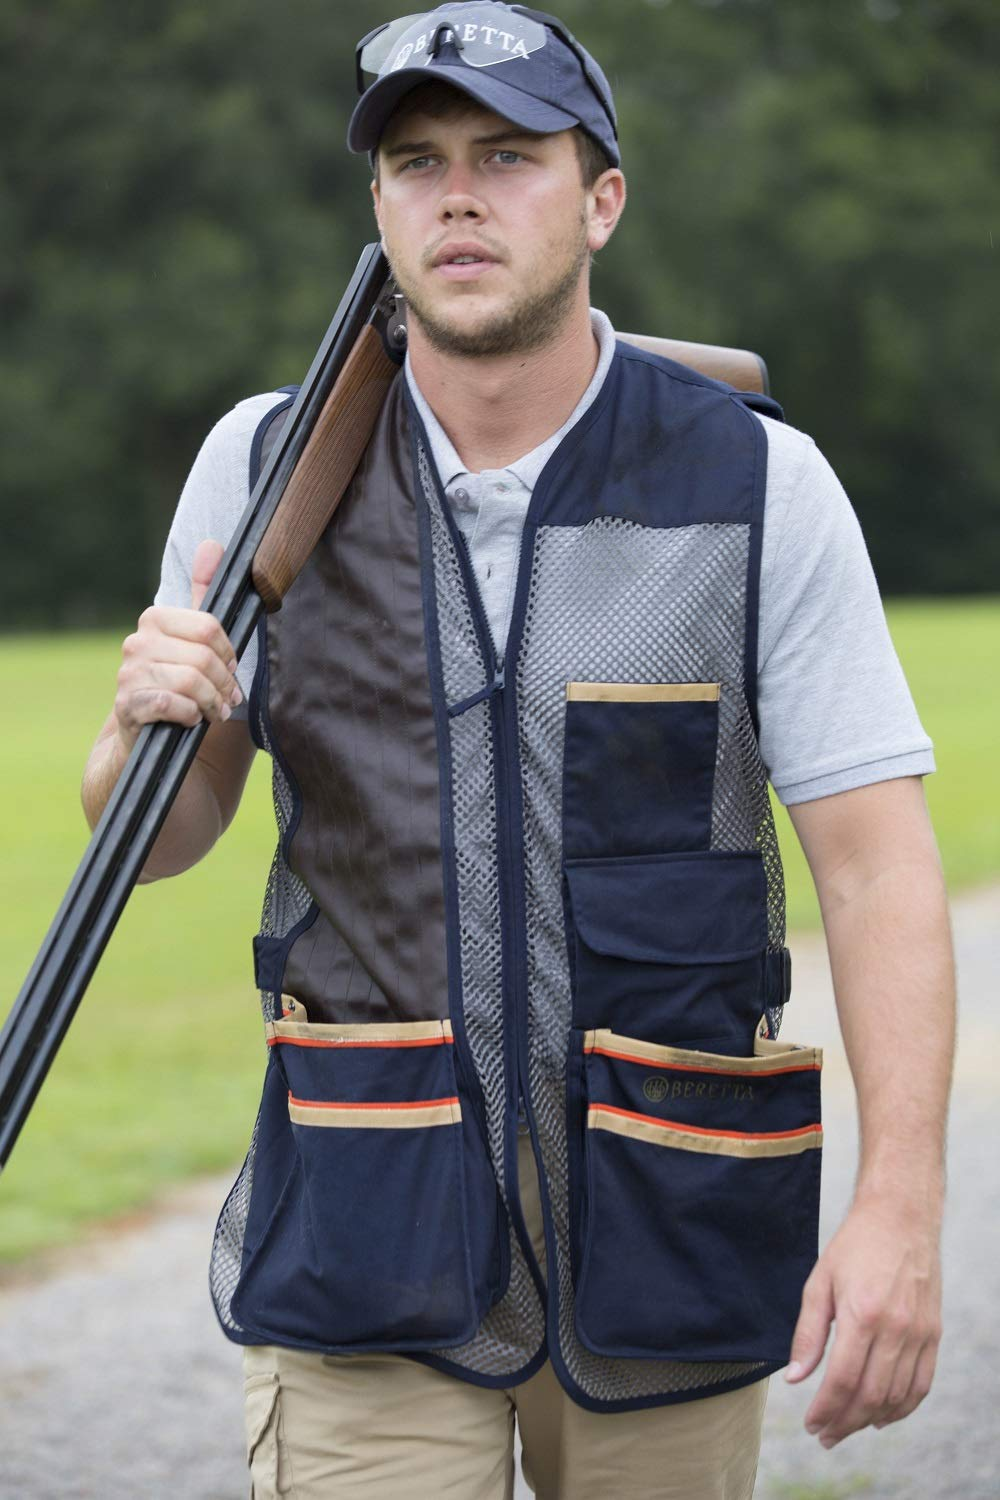 Beretta Mens US Two Tone Shooting Vest, Black Edition, S by Beretta (Image #1)